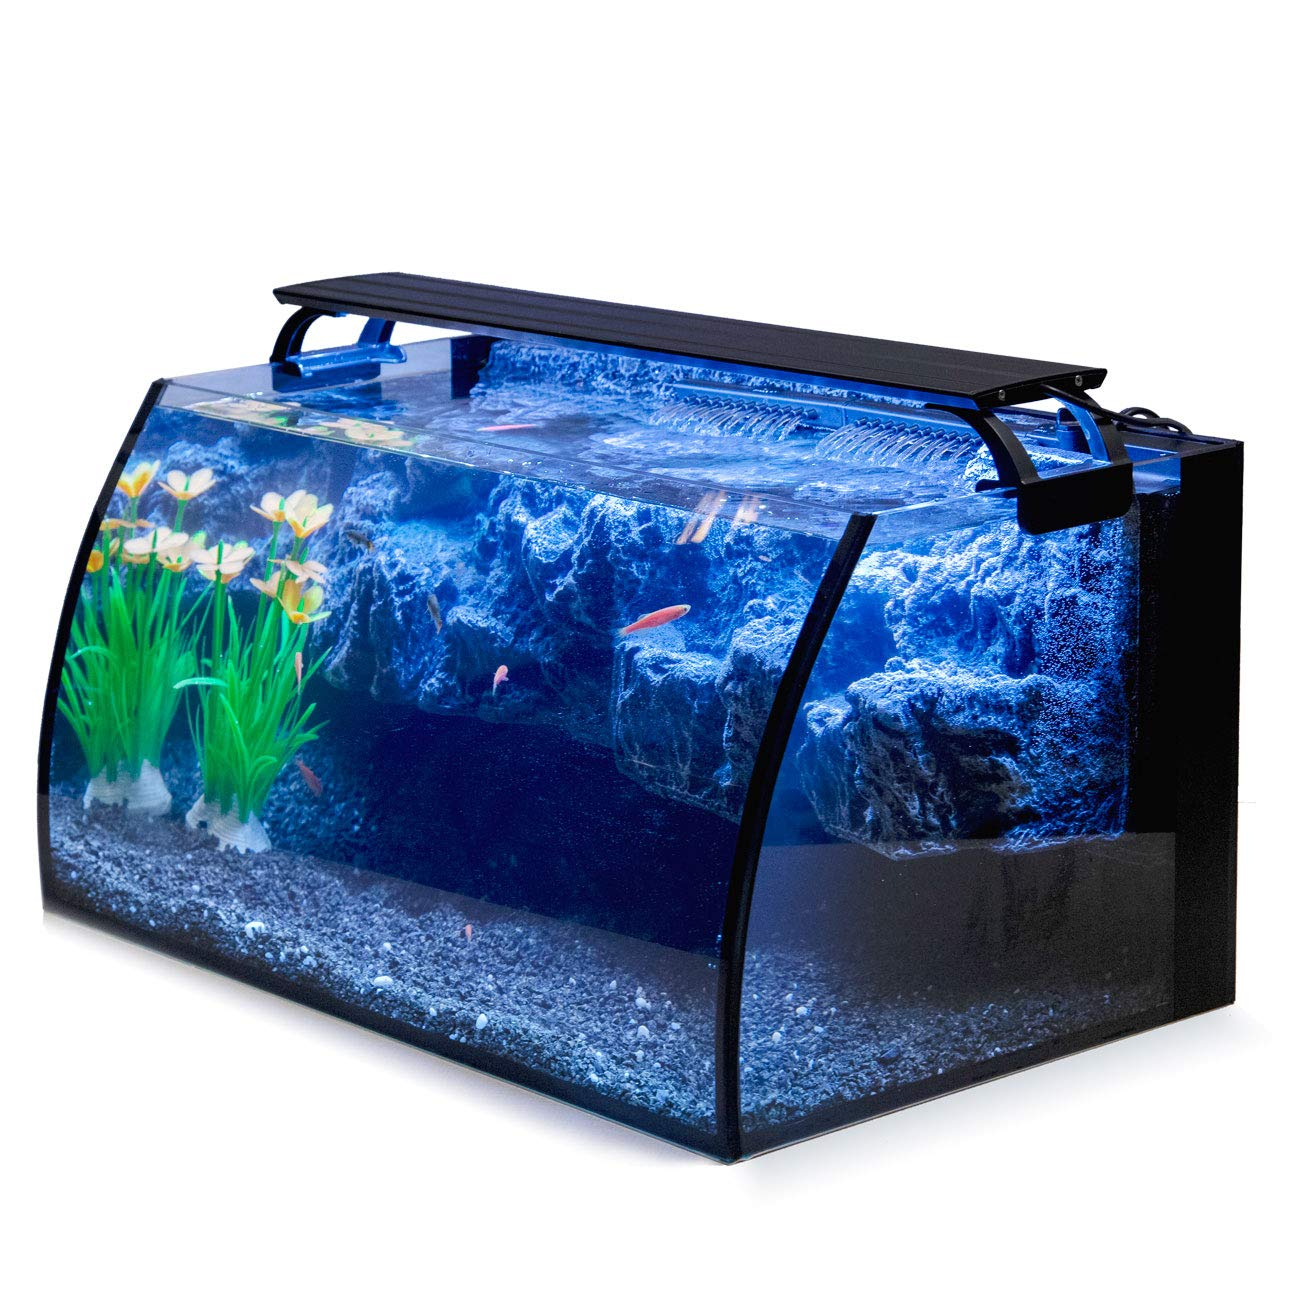 Hygger Horizon 8 Gallon LED Glass Aquarium Kit for Starters with 7W Power Filter Pump, 18W Colored led Light, Wide View Curved Shape Fish Tank with Undetachable 3D Rockery Background Decor by Hygger